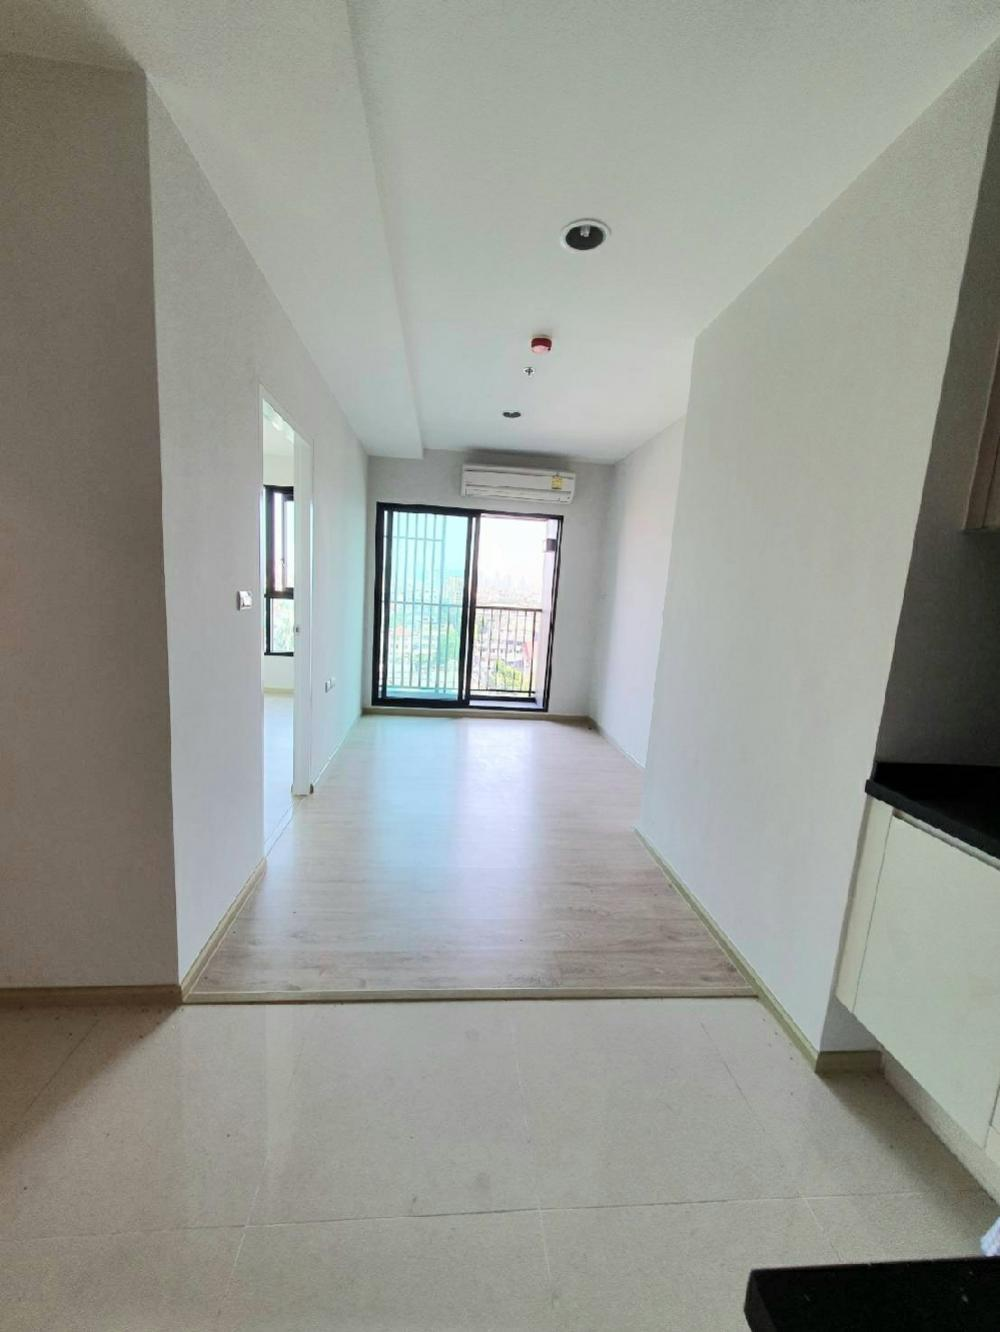 For SaleCondoRatchadapisek, Huaikwang, Suttisan : CONDO FOR SALE Fuse Miti Sutthisan - Ratchada near Sutthisan MRT, Sutthisan winitchai road,Din Daeng, Bangkok